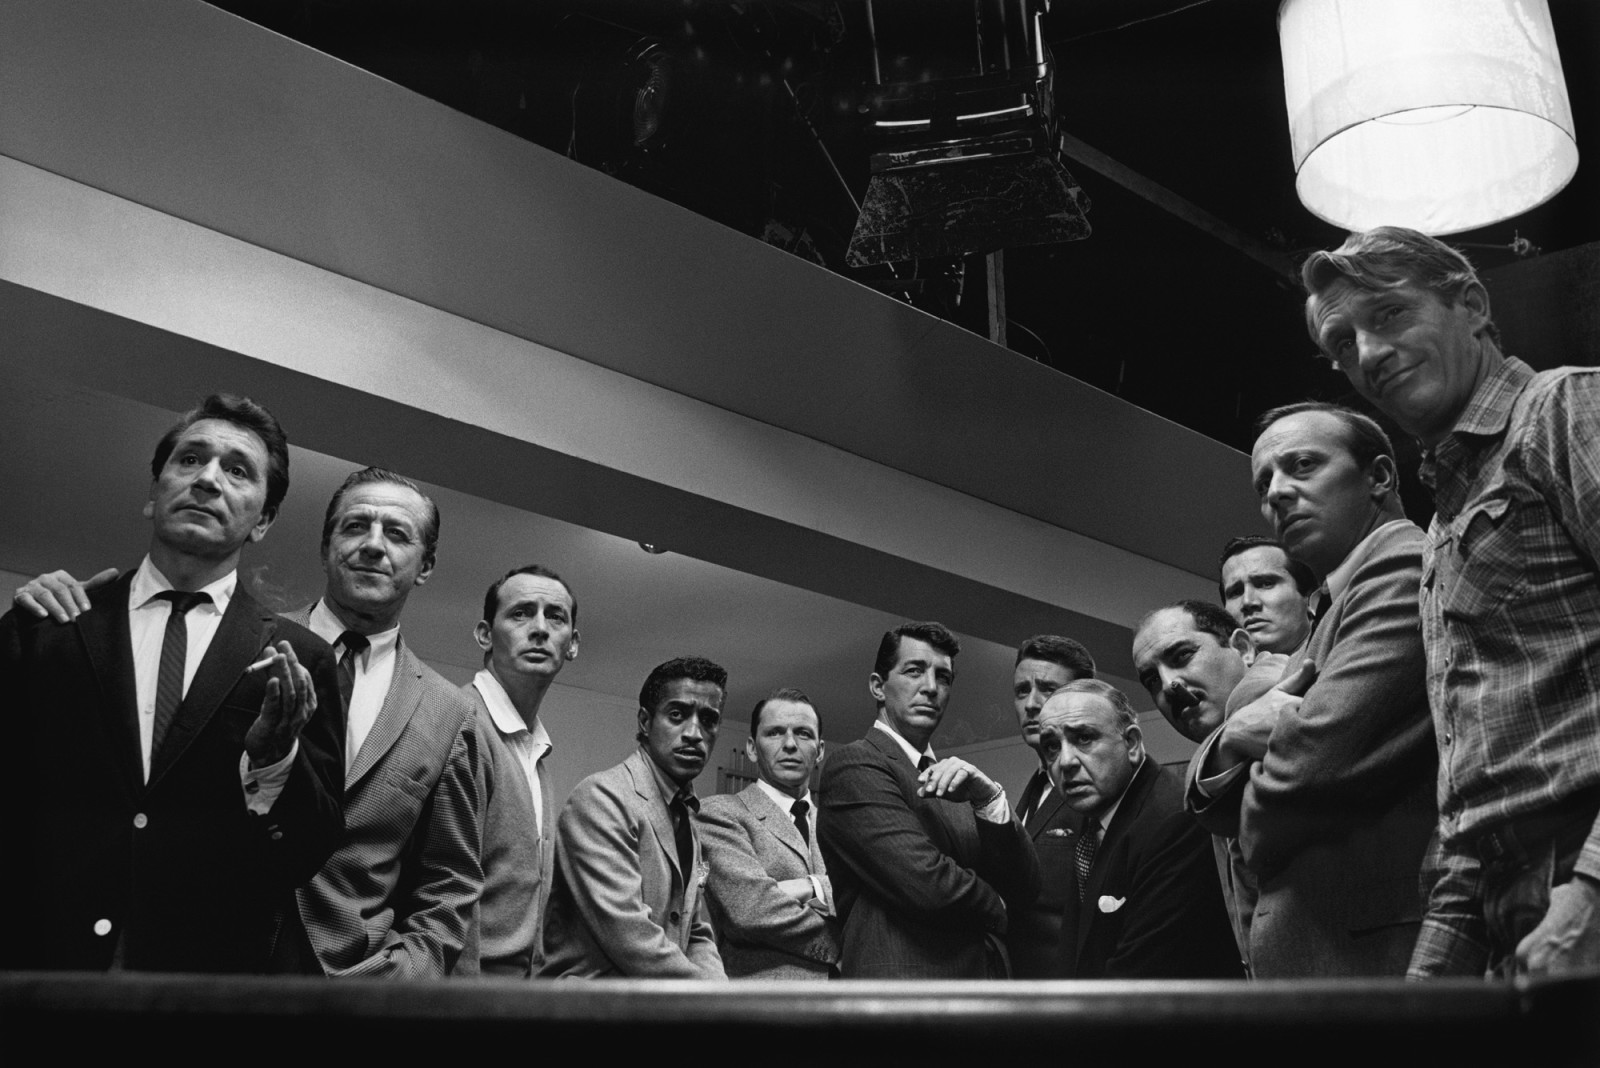 Sid Avery, Ocean's Eleven: Frank Sinatra and Cast, 1960